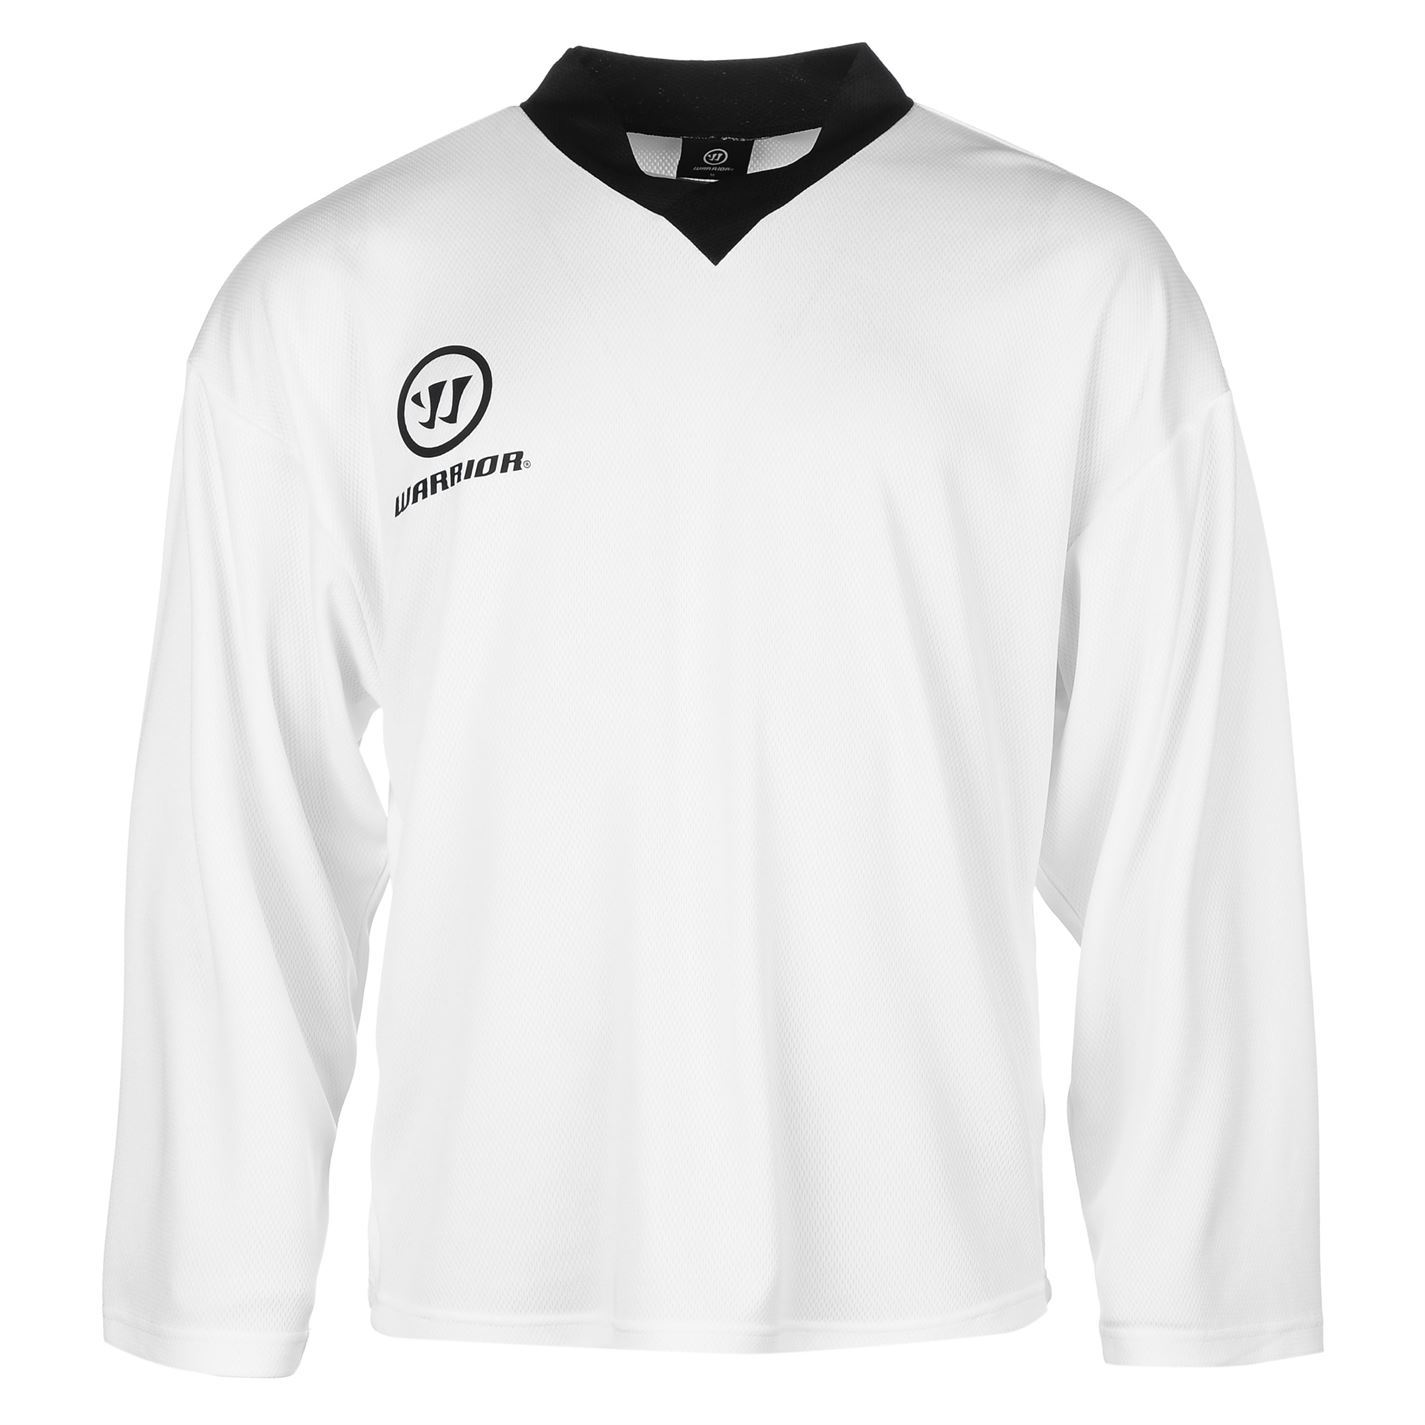 Image is loading Warrior-Mens-Practice-Jersey-Mesh-Breathable-Ice-Hockey- 726d0def0